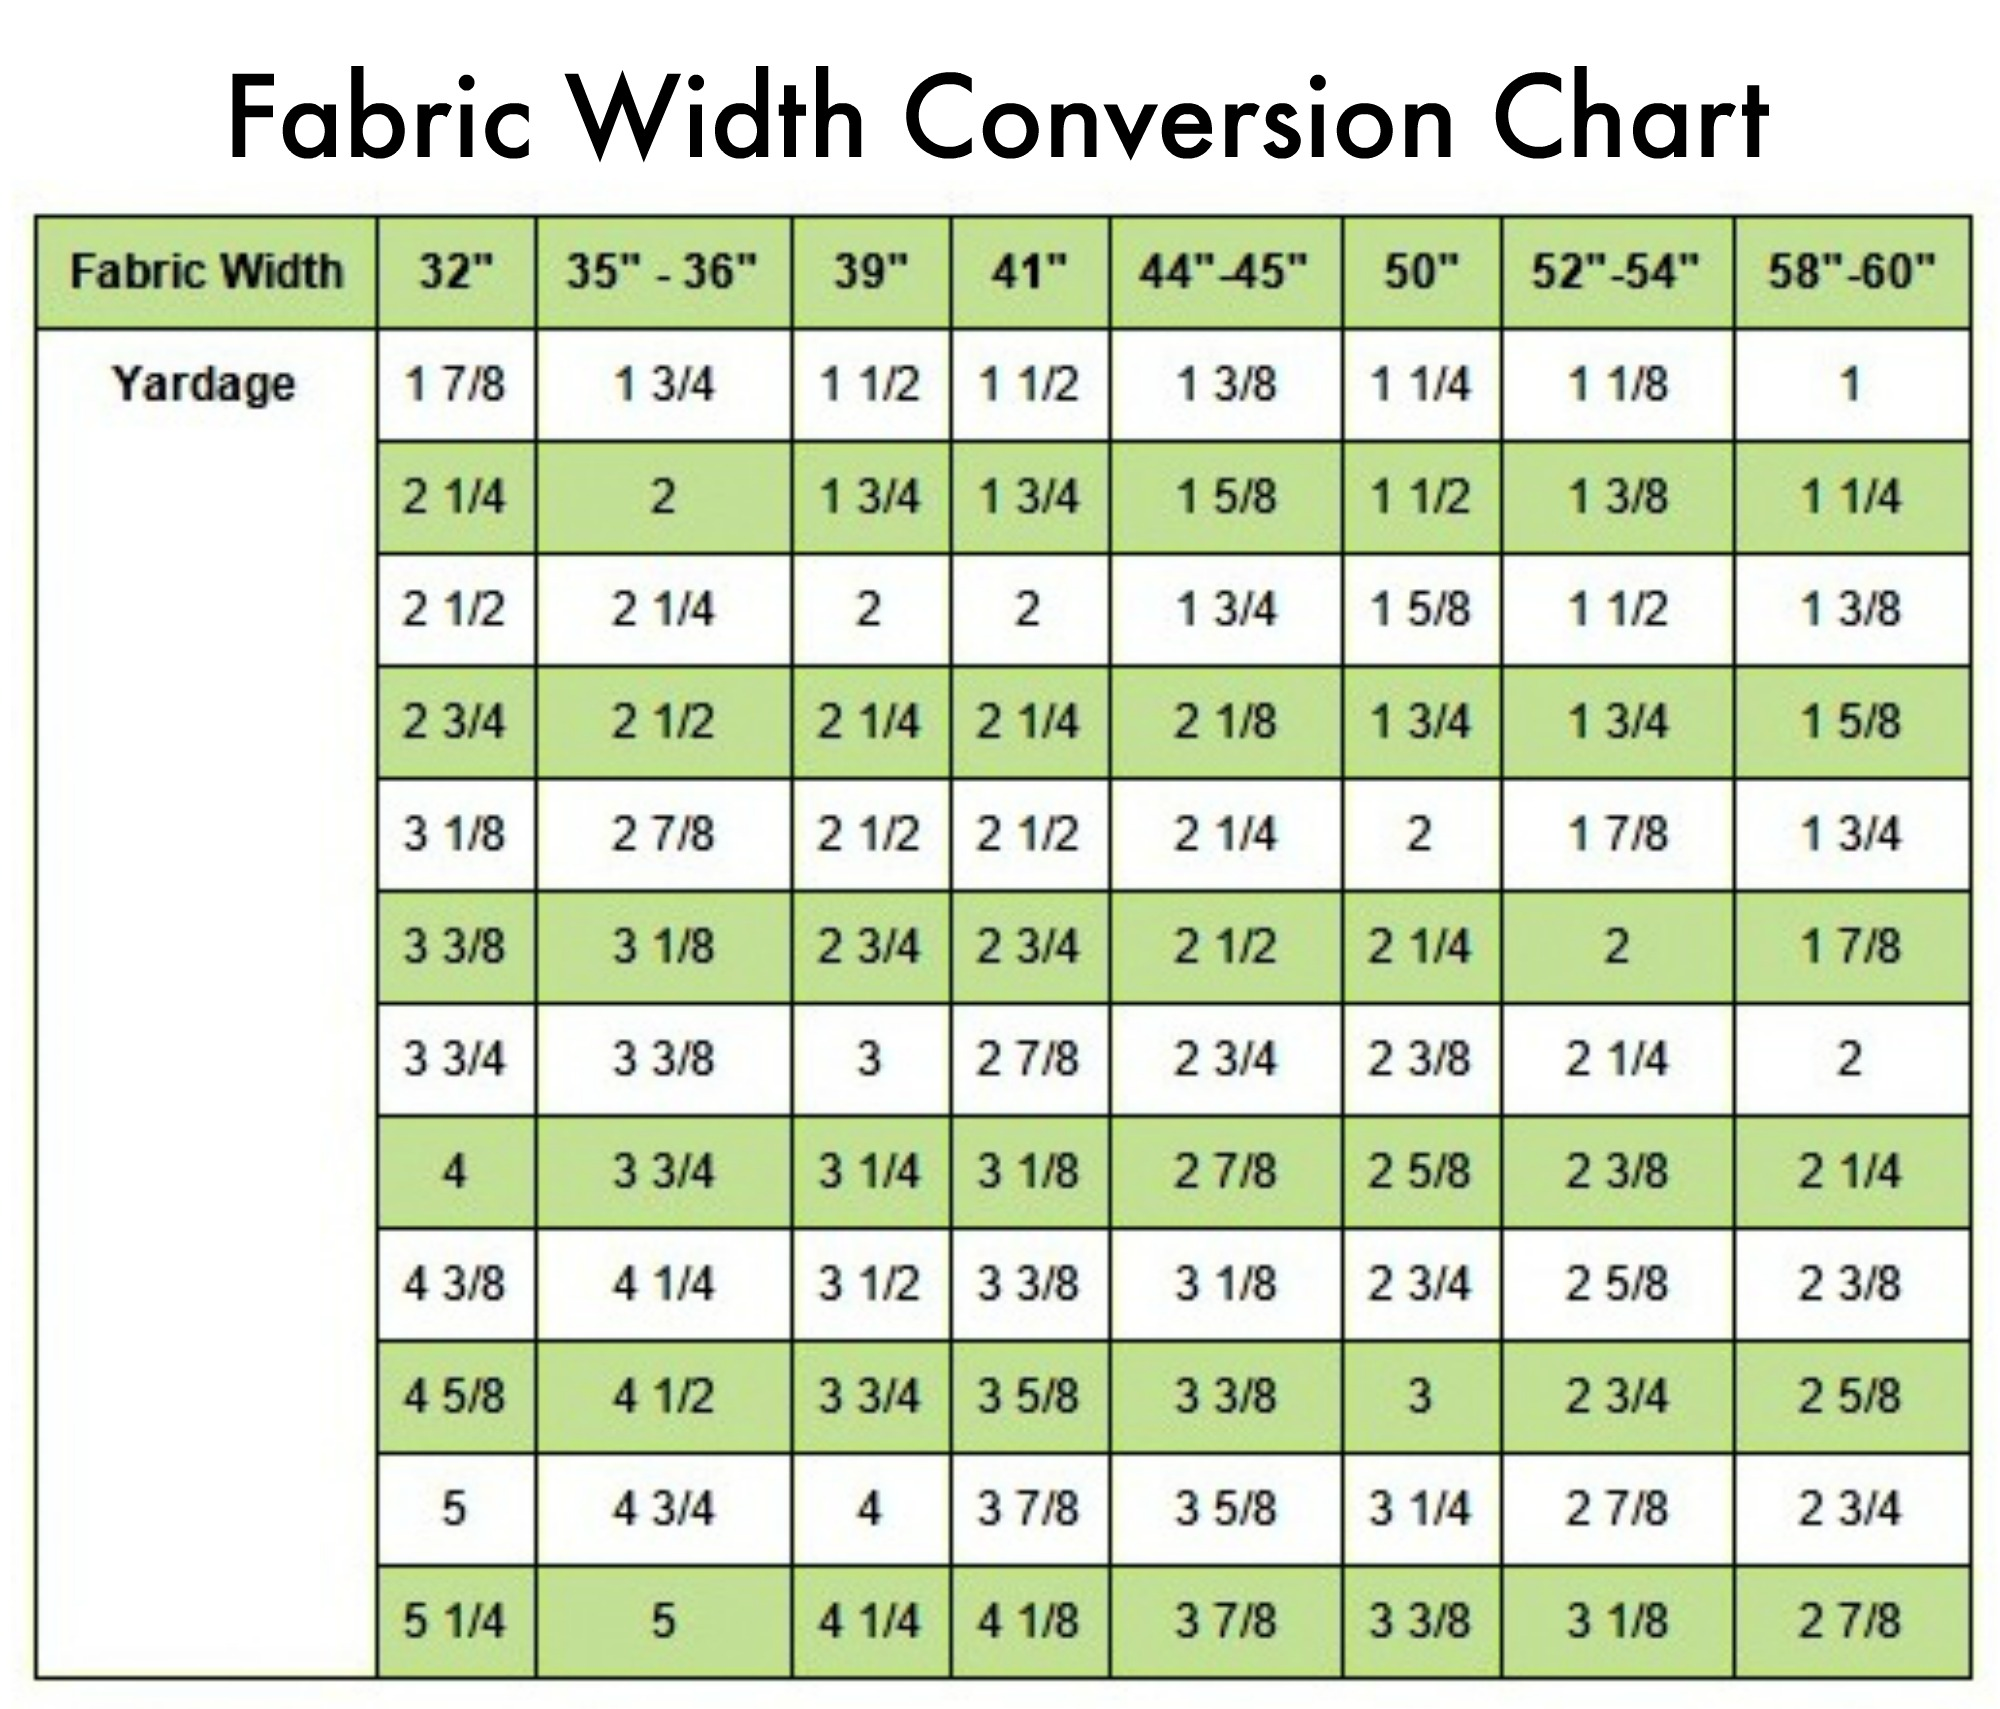 The beginners guide how to shop for fabric butterick mccall conversion chart nvjuhfo Images